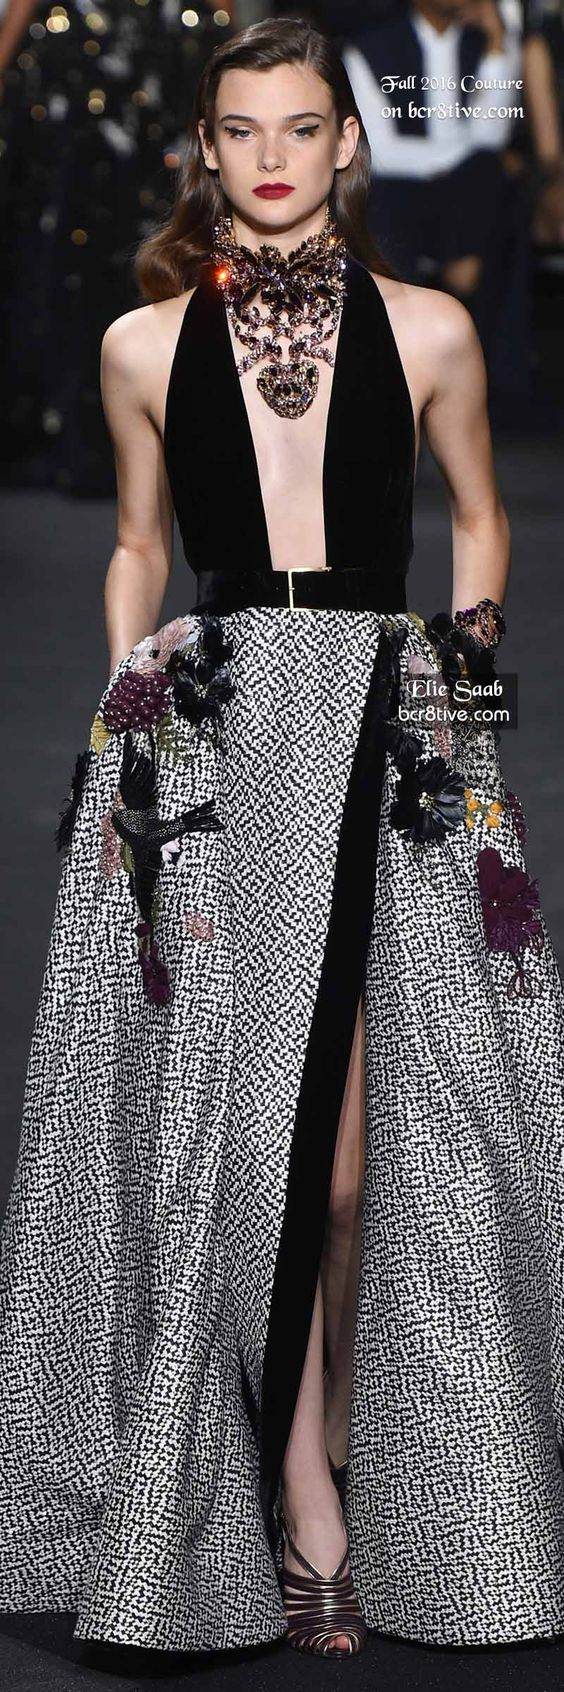 Elie Saab - The Best Fall 2016 Haute Couture Fashion